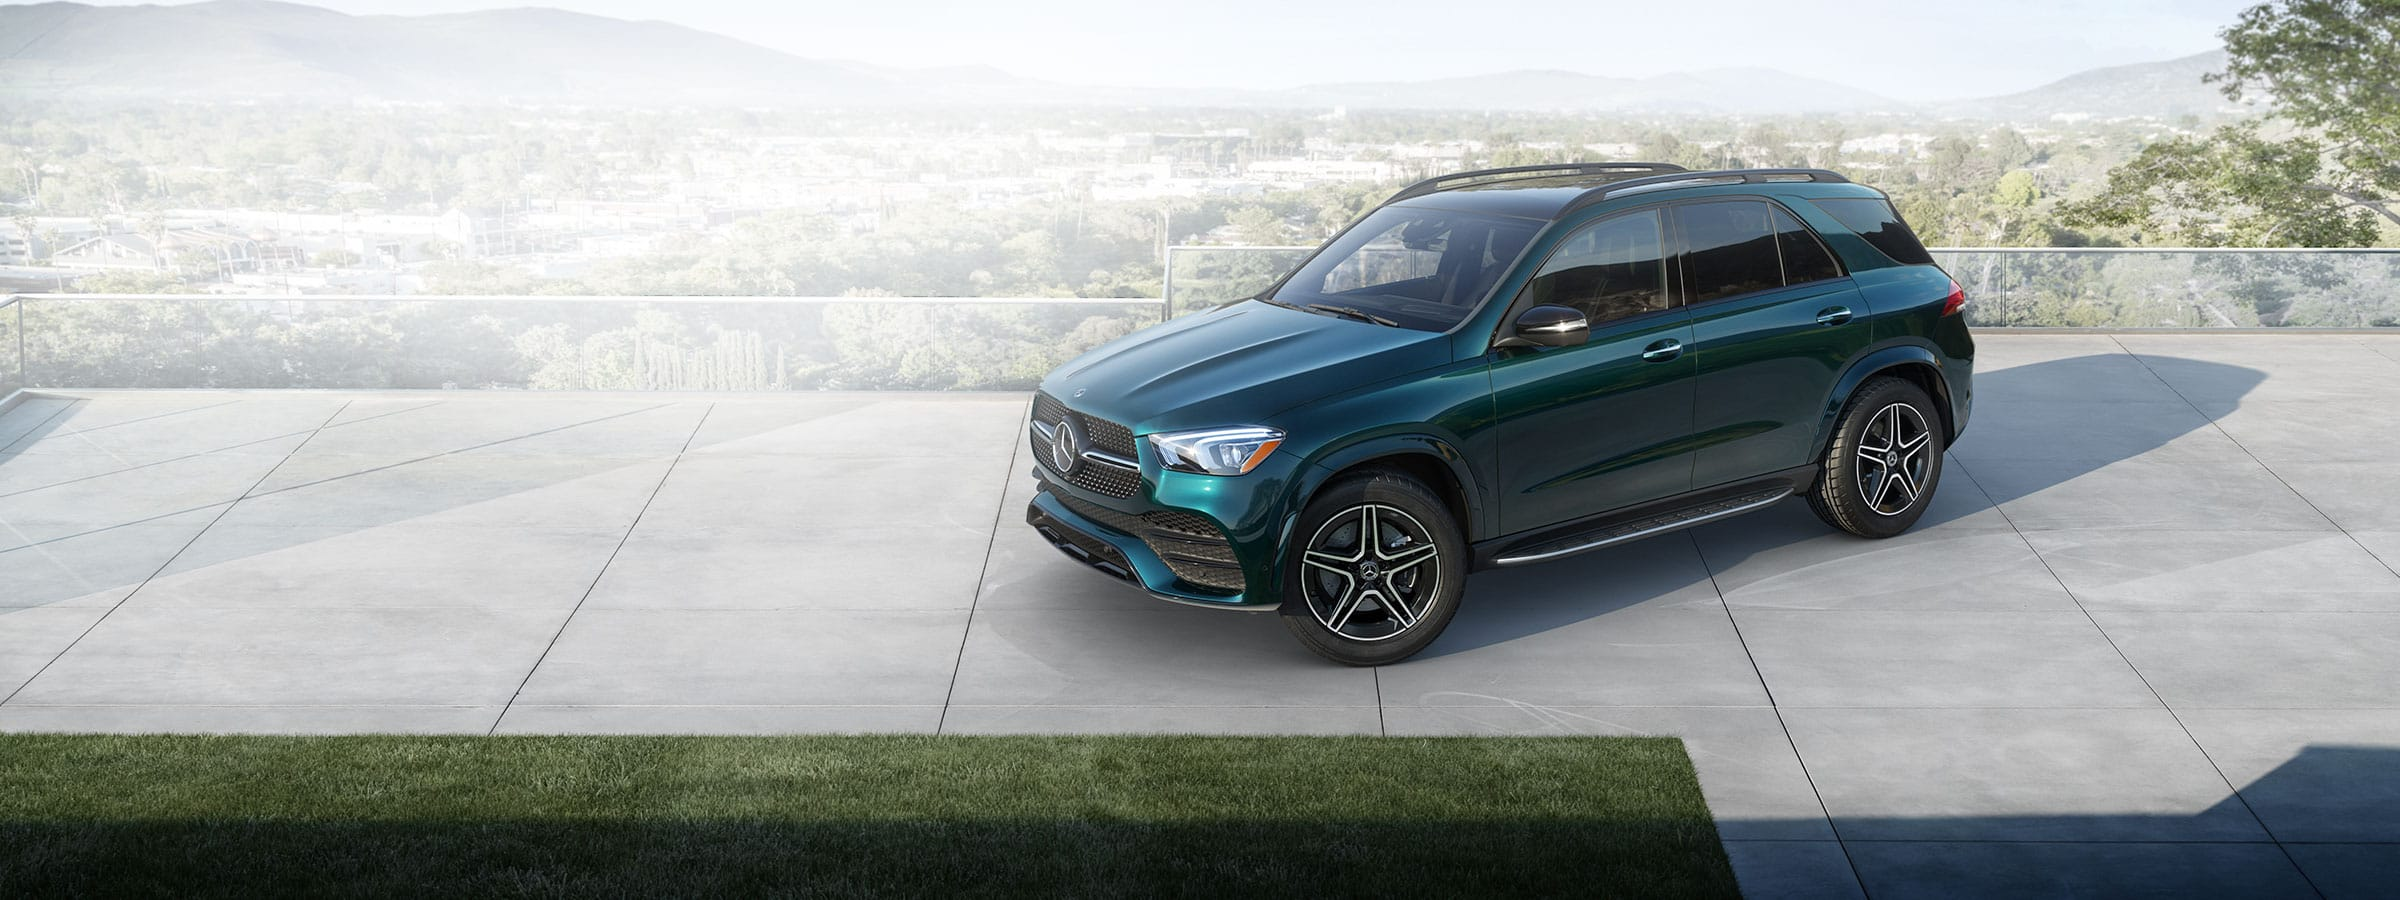 A dark green GLE SUV sits on a rooftop overlooking a lush landscape.